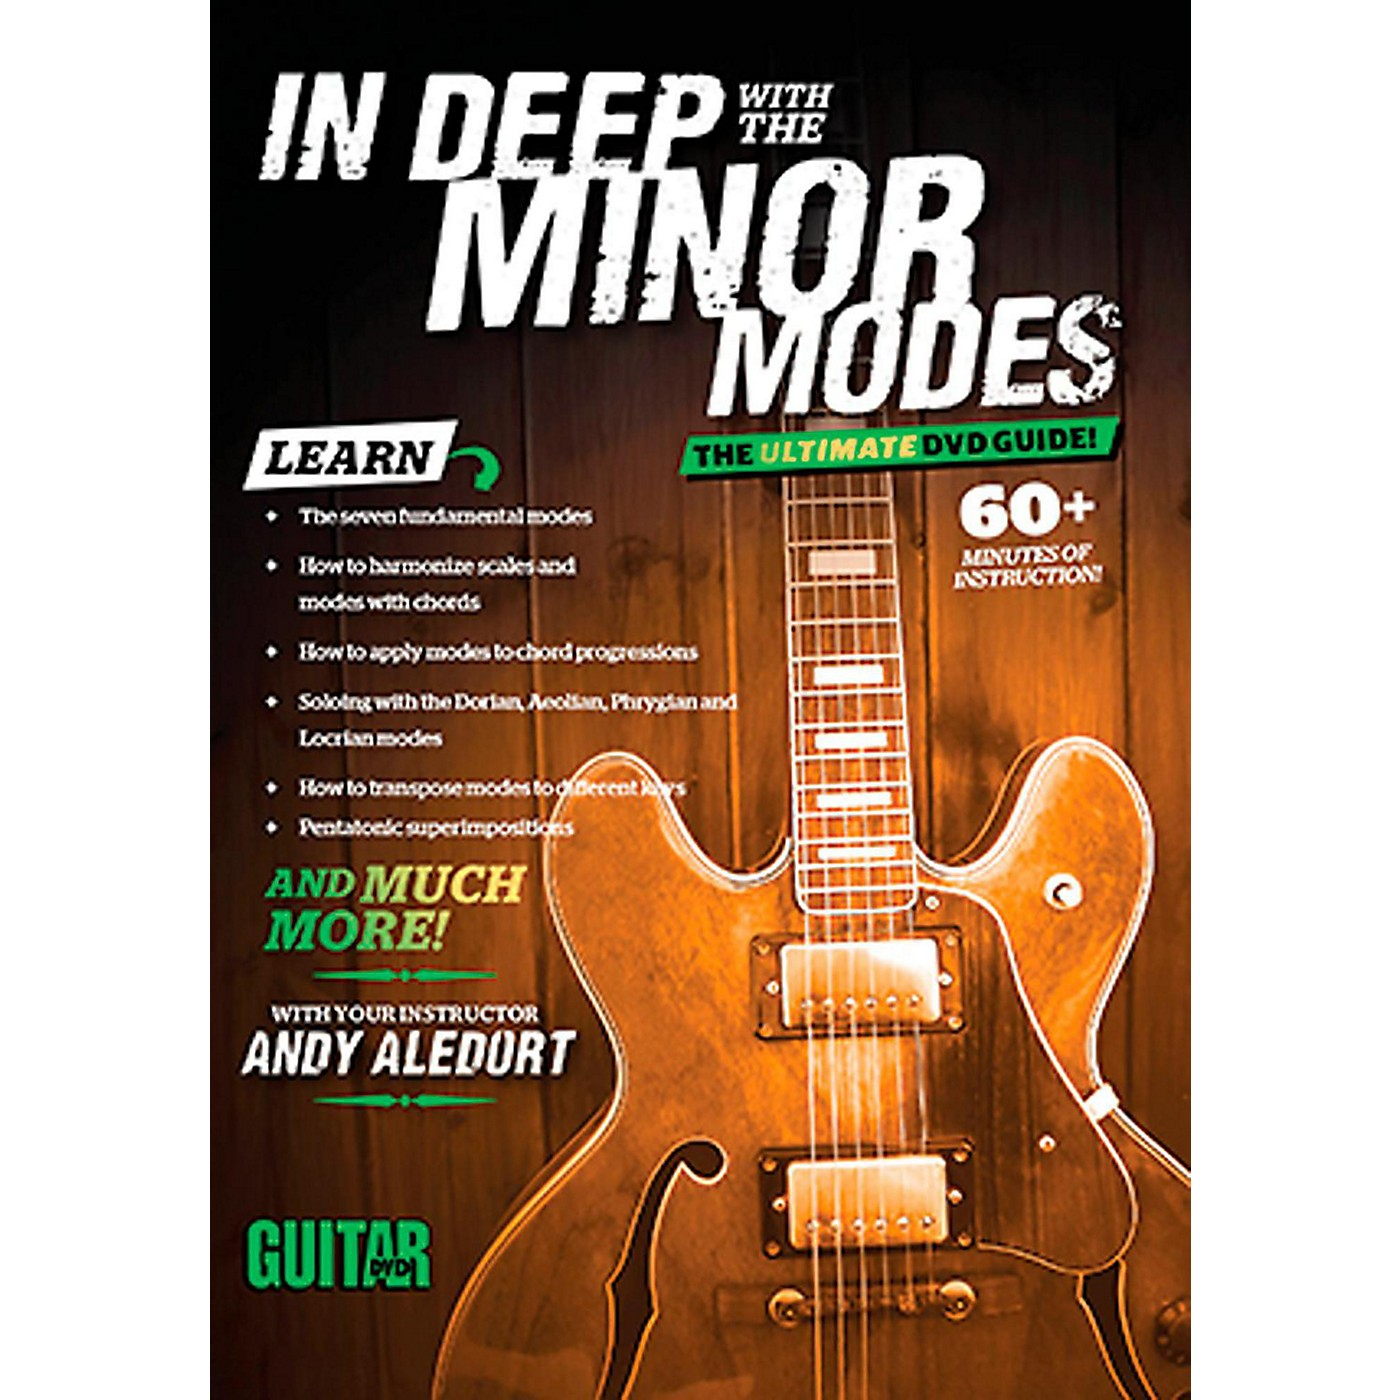 Guitar World Guitar World: In Deep with the Minor Modes DVD Intermediate thumbnail